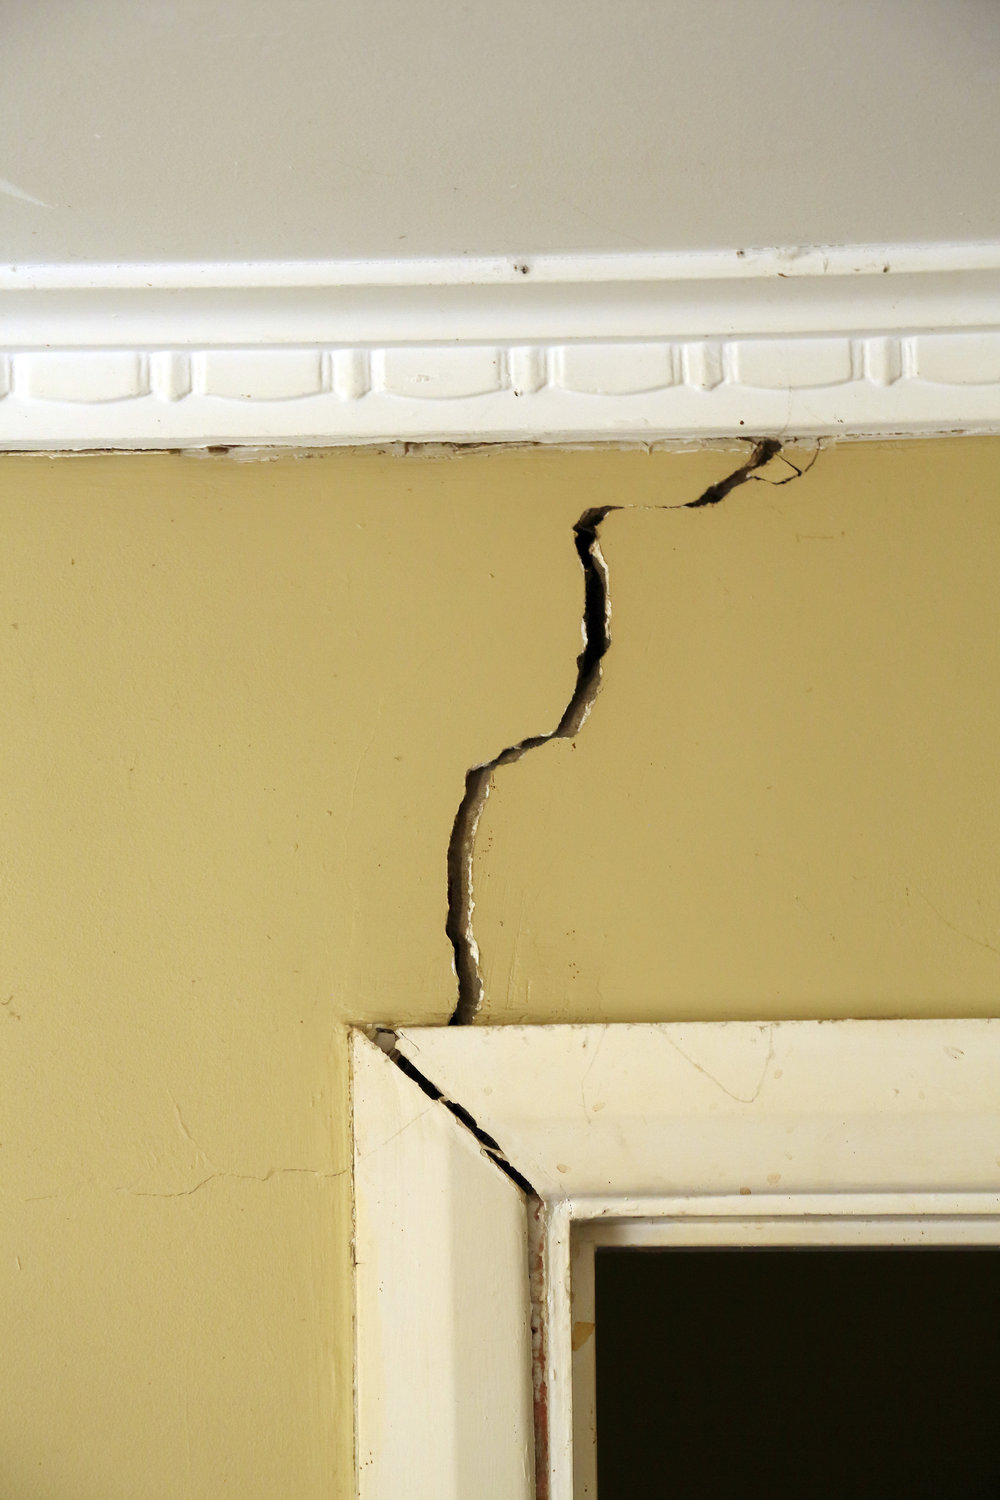 Internal cracking at 'weak point' within the fabric of the building.